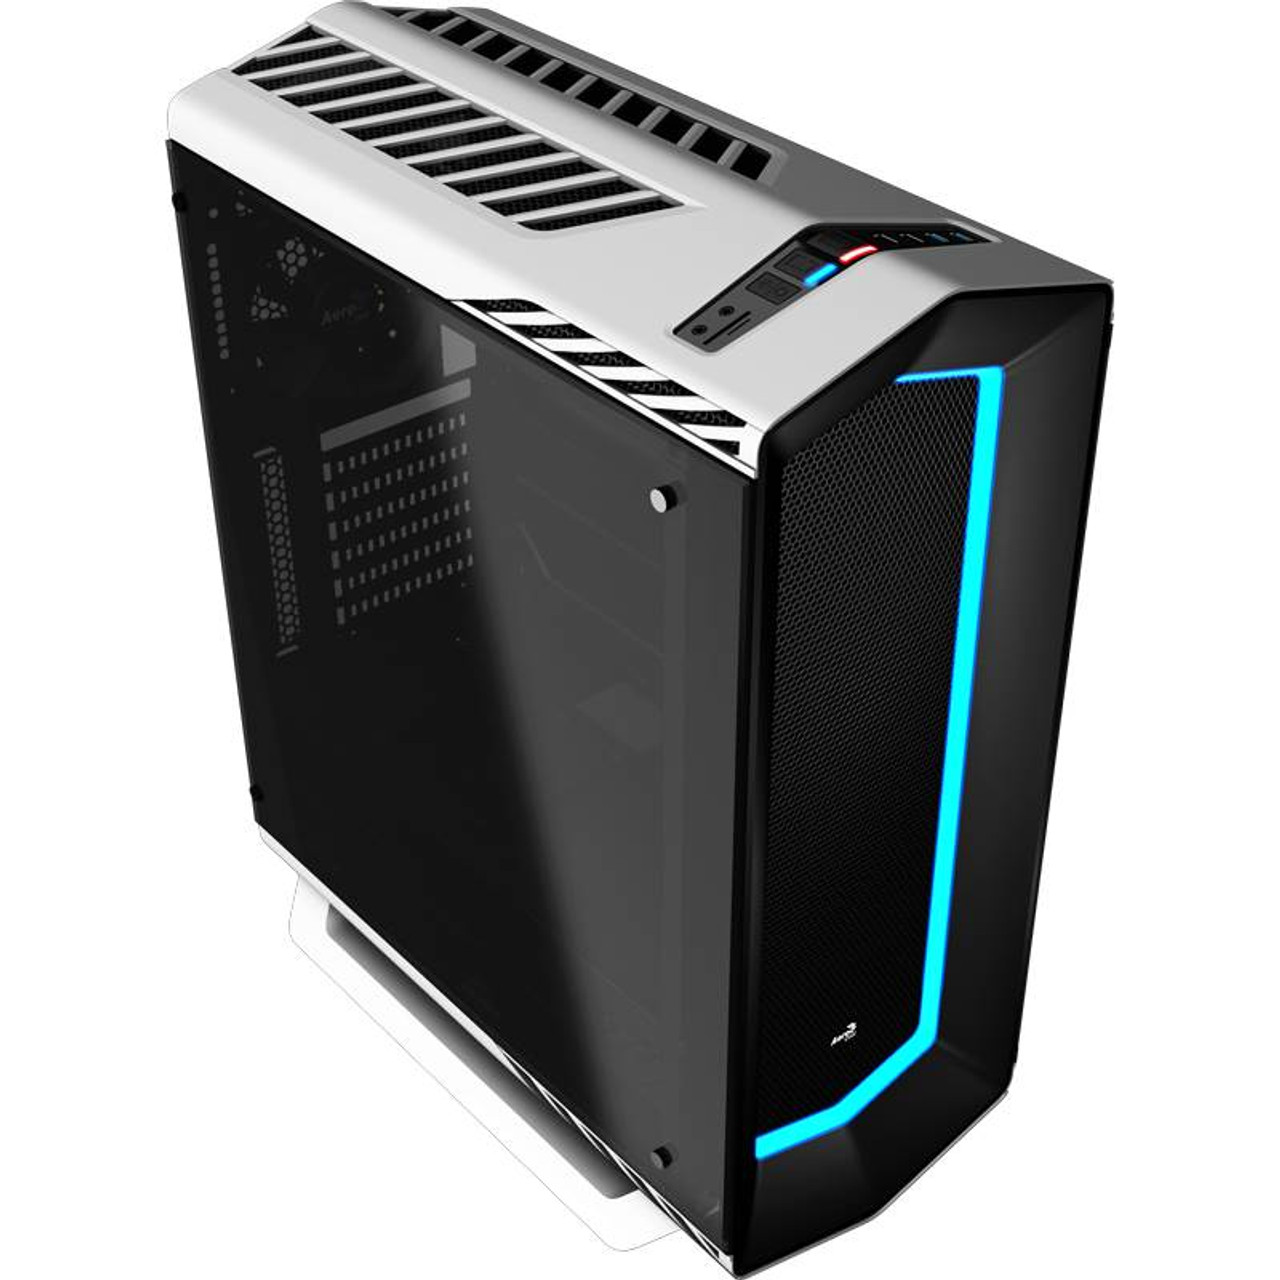 Image for Aerocool Project7 P7-C1 ATX Tempered Glass Mid-Tower Case - White CX Computer Superstore